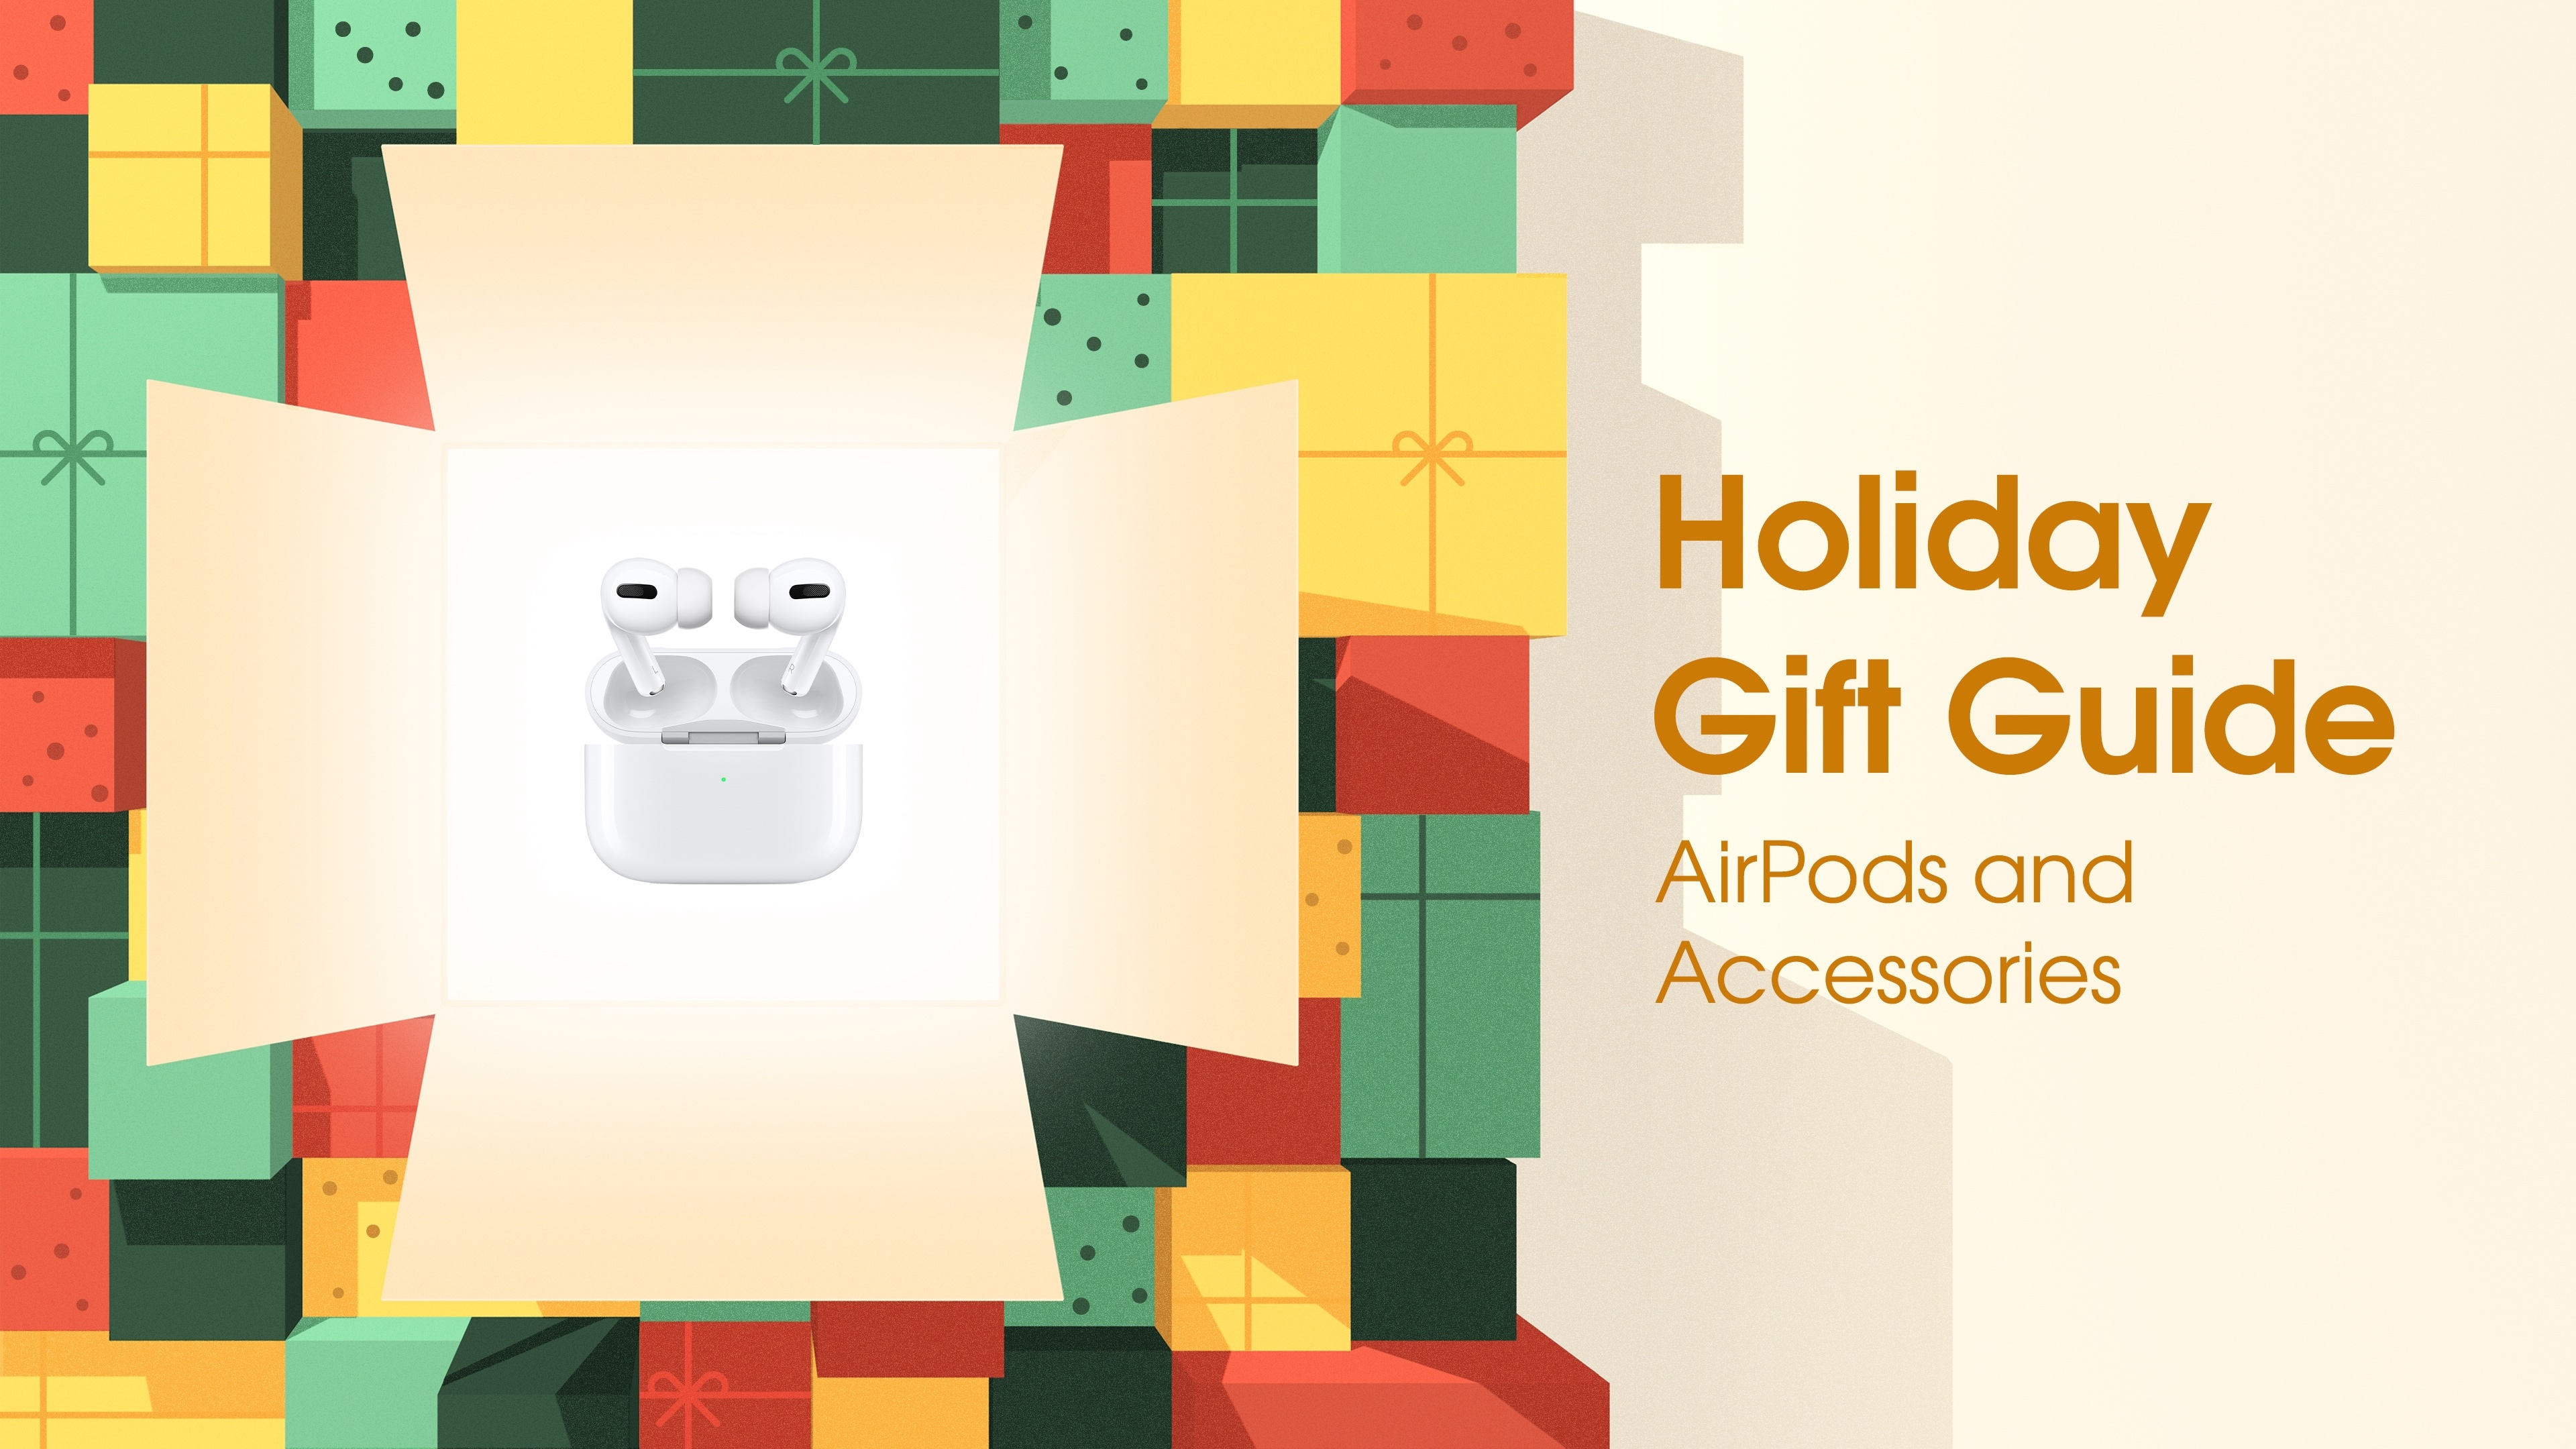 photo of 9to5Mac Gift Guide: AirPods vs AirPods Pro buying guide and the best accessories image